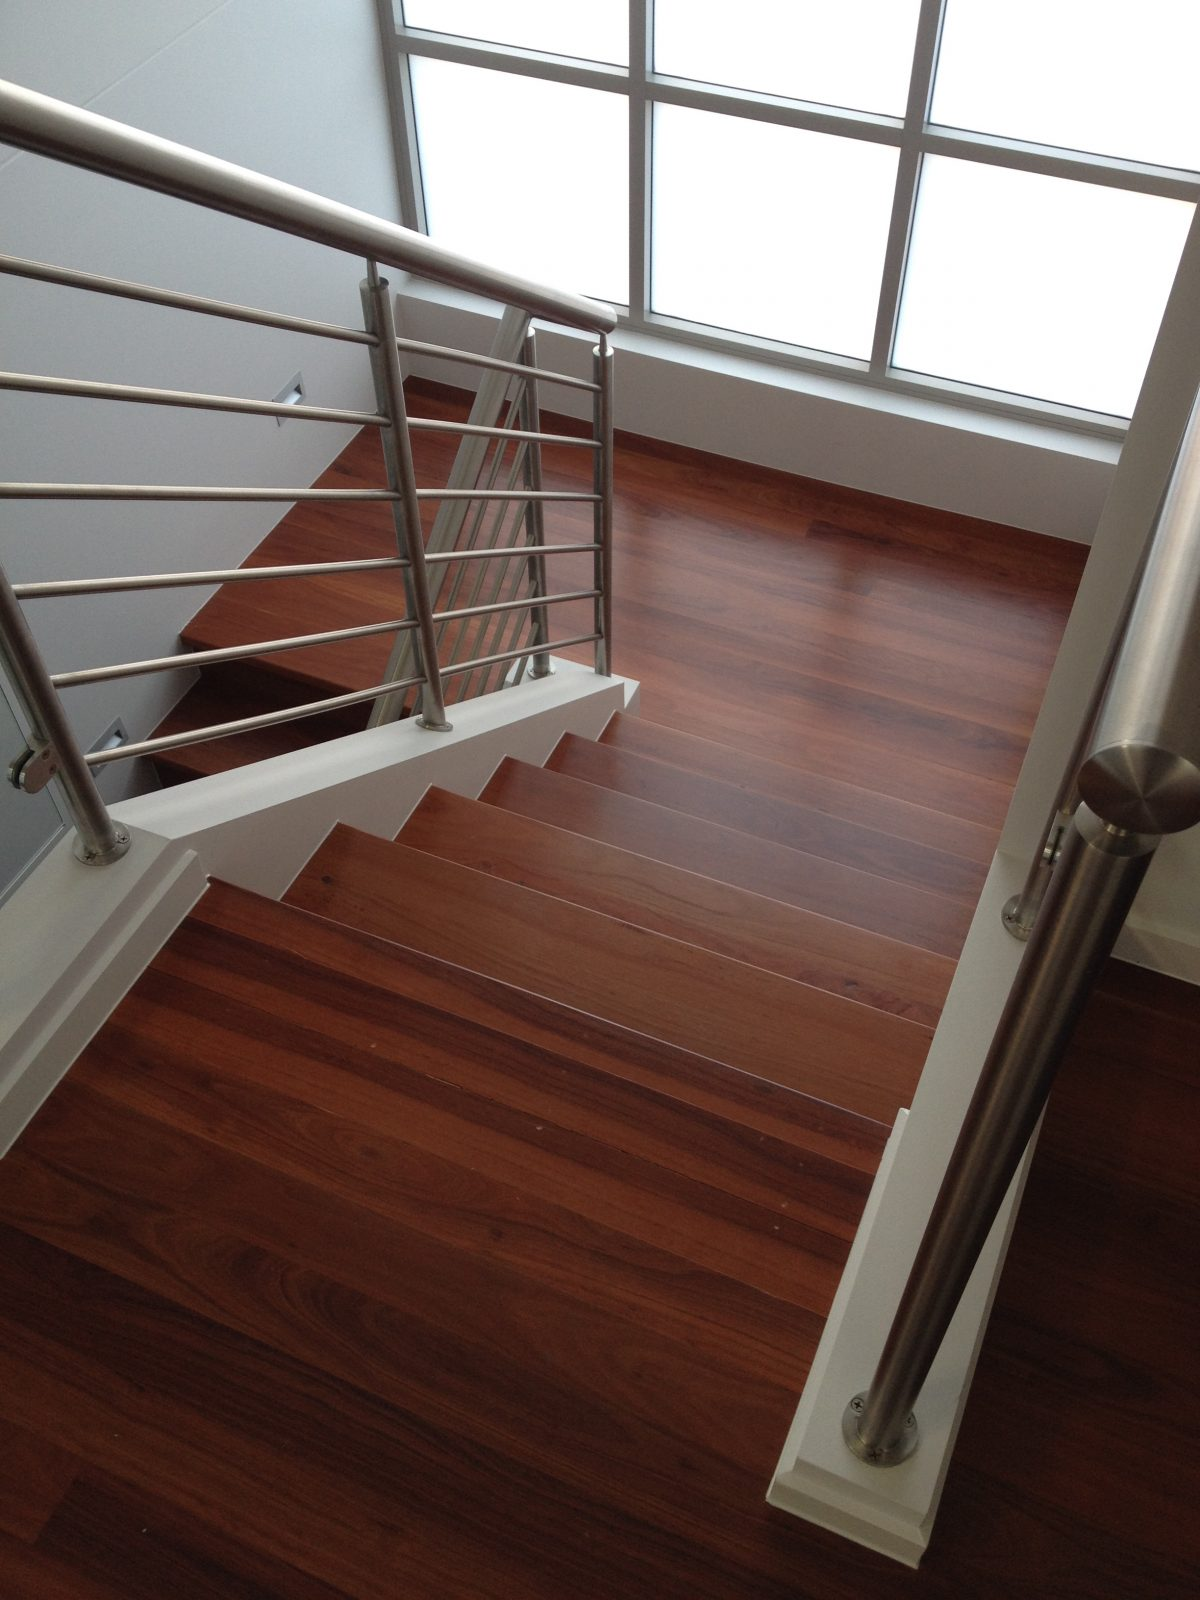 San Souci Red Iron Bark Stair treads with timber flooring landing - polished stainless steel Baluster by Timber Floors Pty Ltd